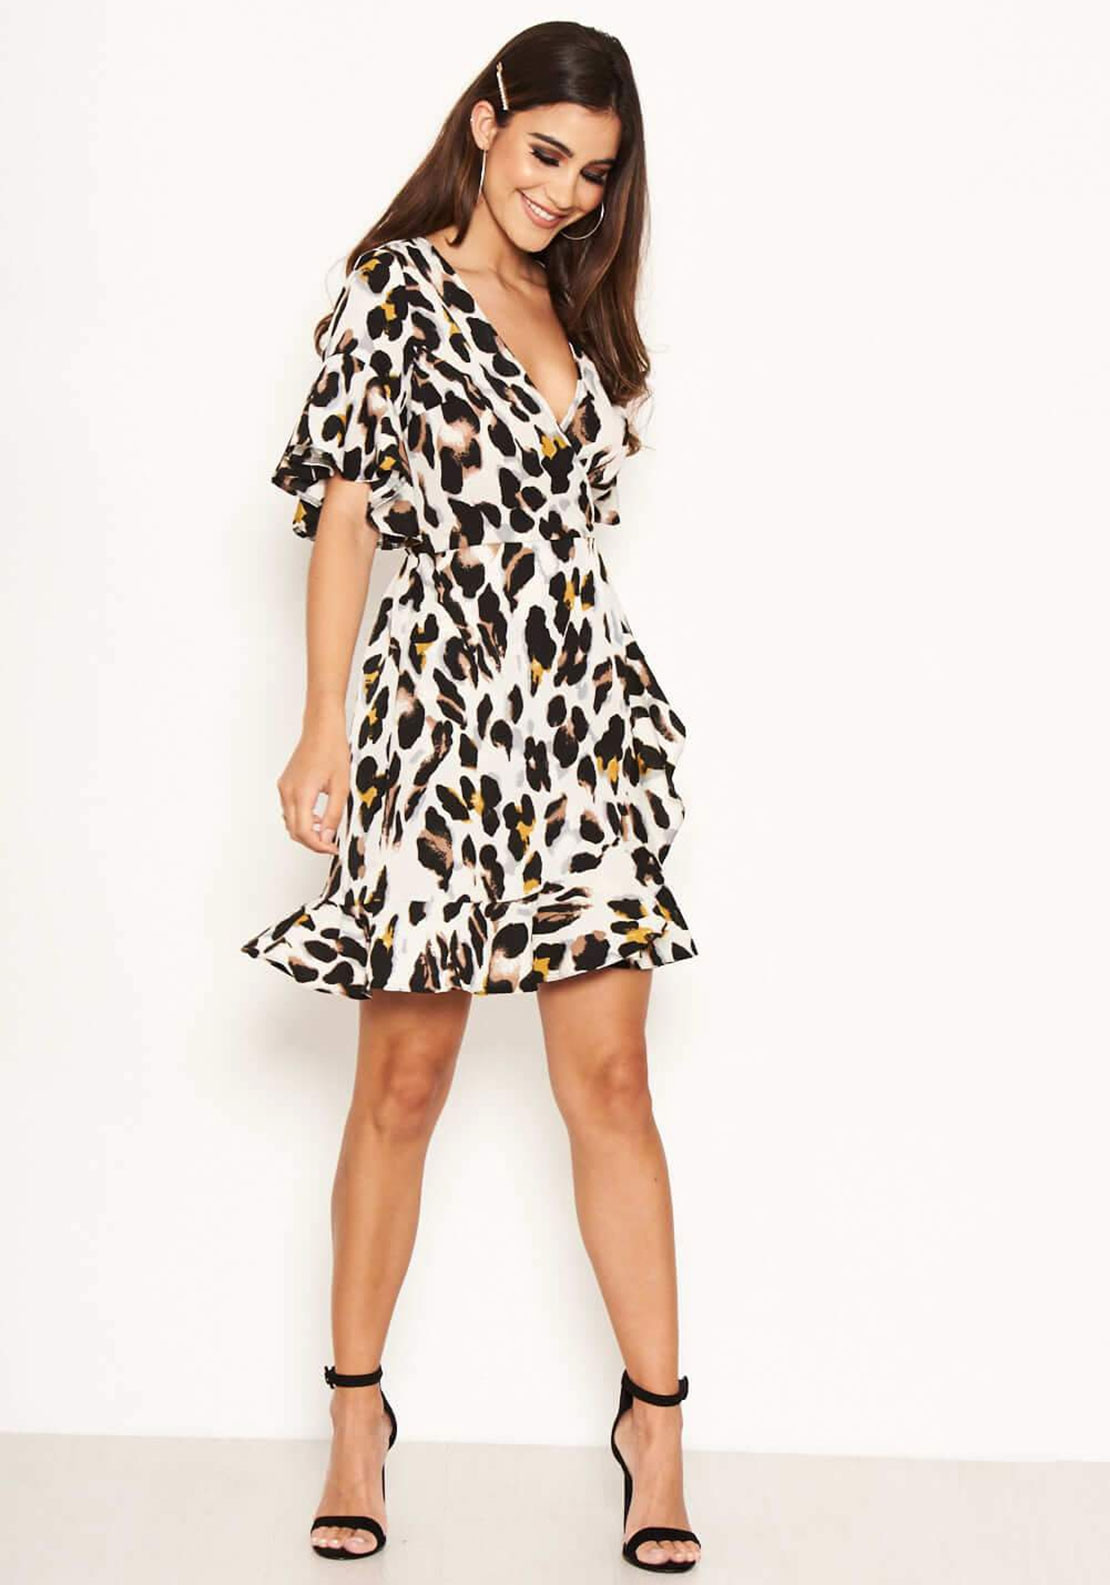 6679eed4df215 AX Paris Leopard Print Frill Wrap Dress, Cream. Be the first to review this  product